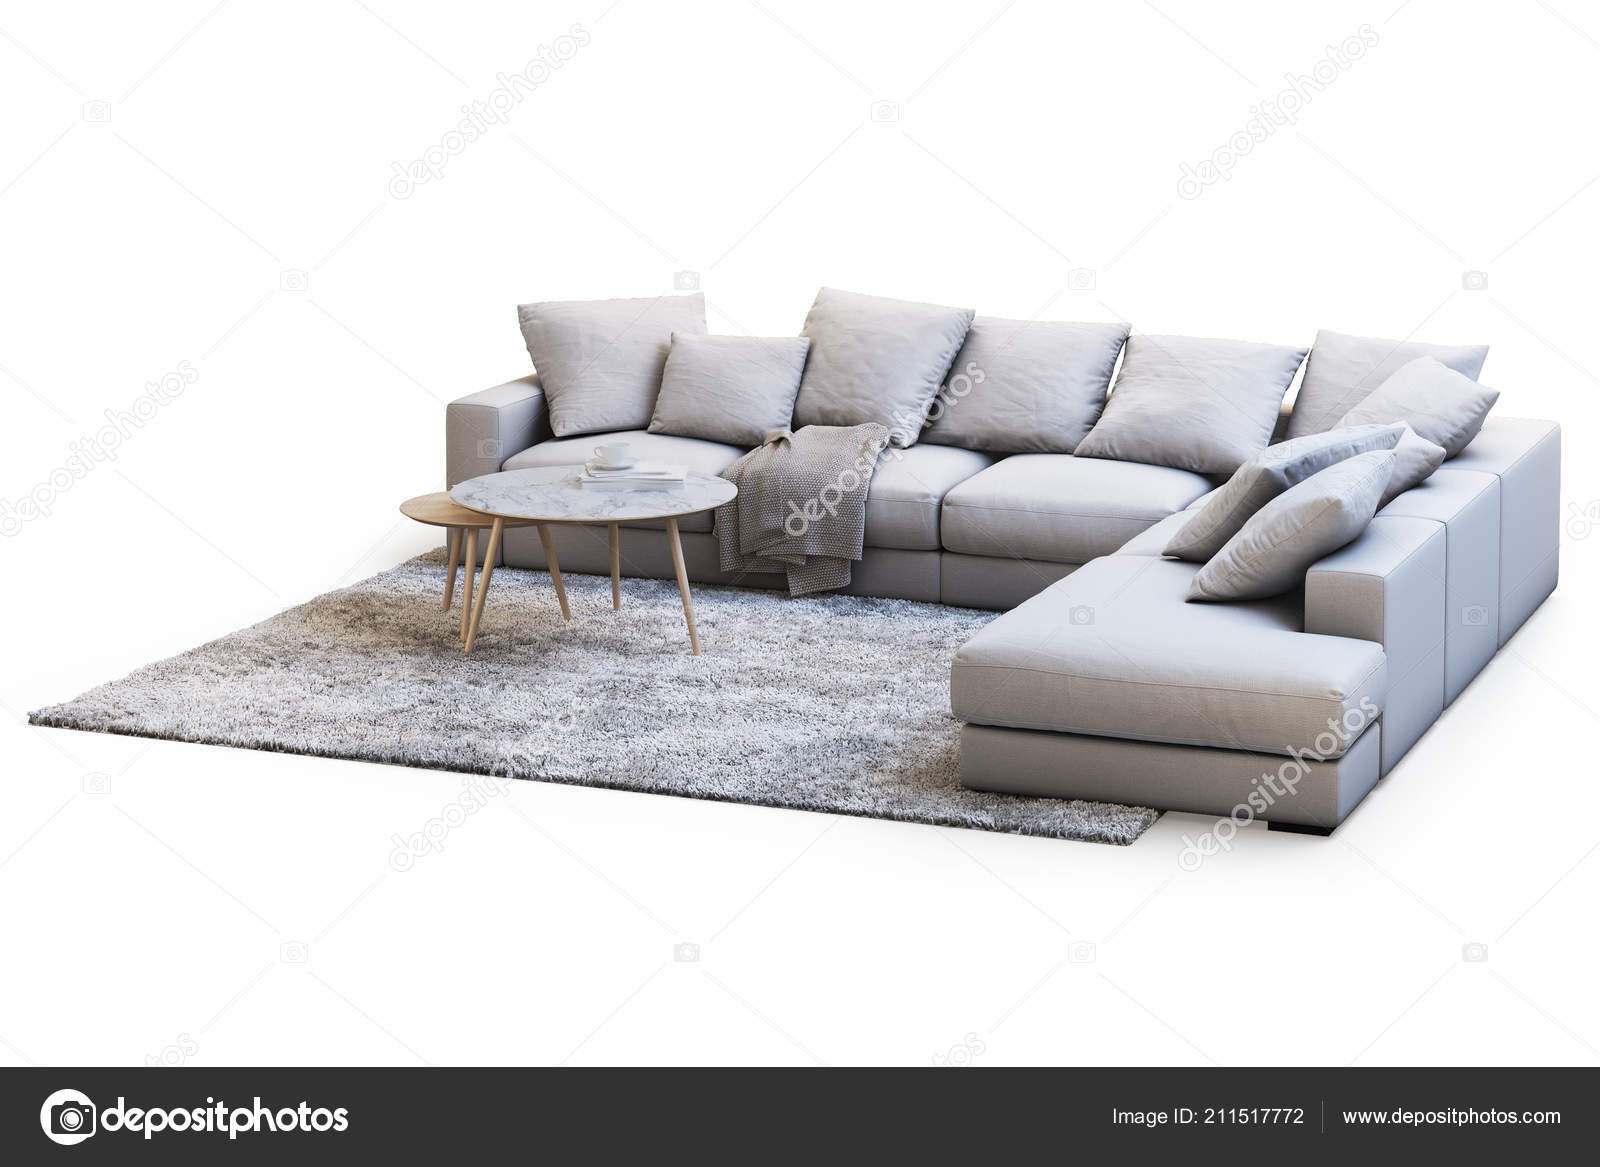 Sofa Set Images Free Download Modern Furniture Set Sofa Carpet Coffee Tables White Background